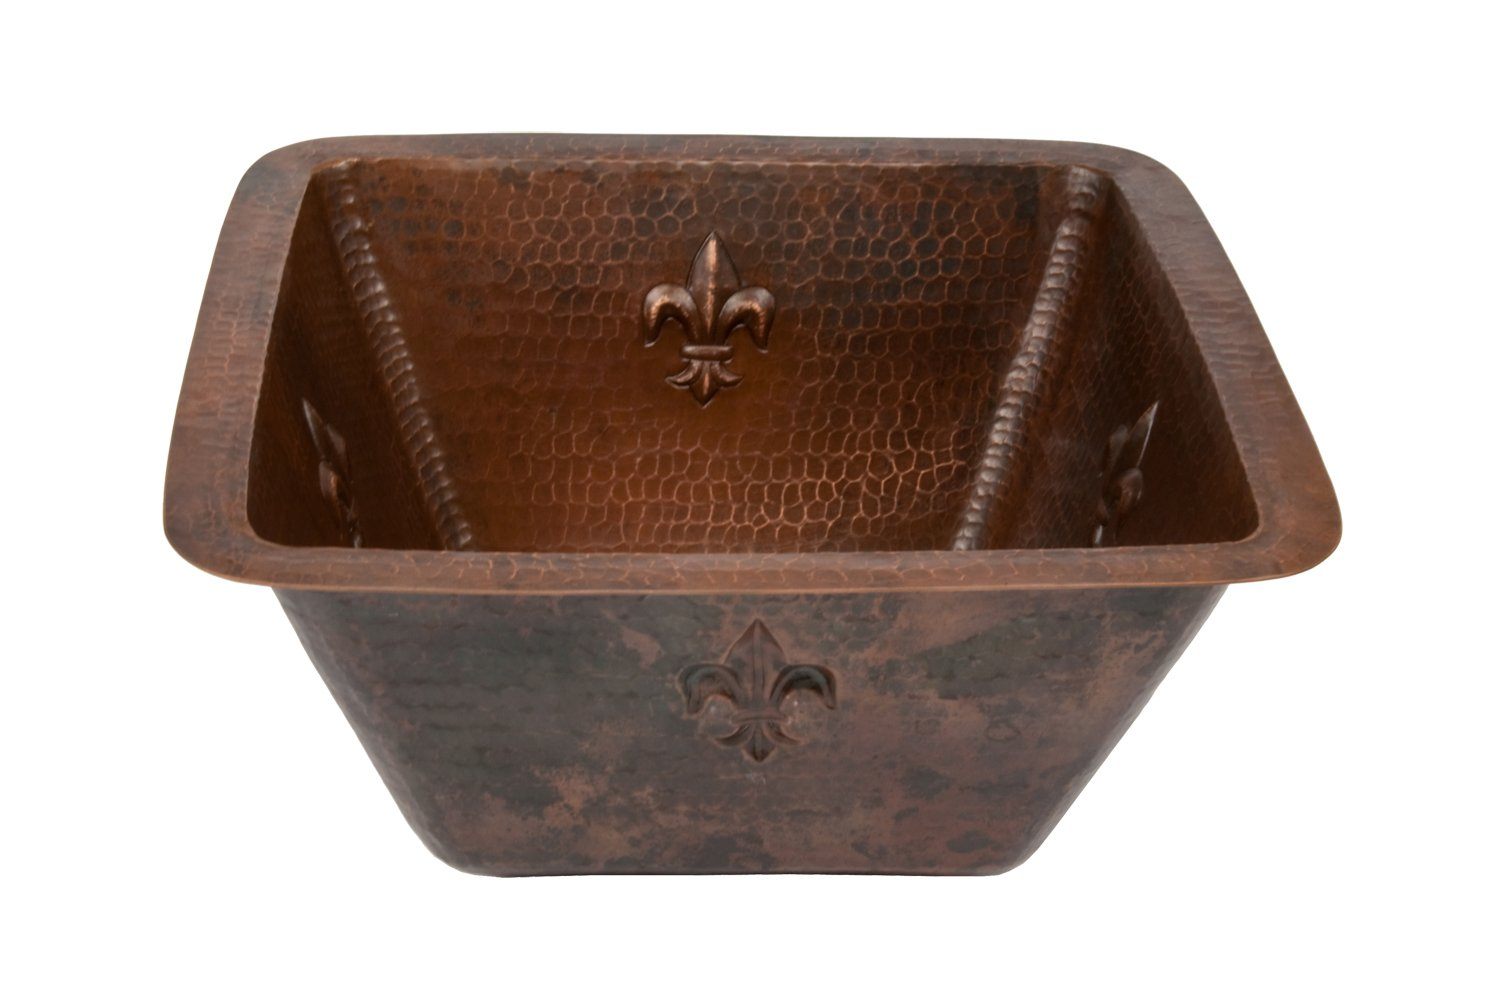 Premier Copper Products BS15FDB3 15-Inch Universal Square Fleur De Lis Hammered Copper Sink with 3.5-Inch Drain Size, Oil Rubbed Bronze by Premier Copper Products